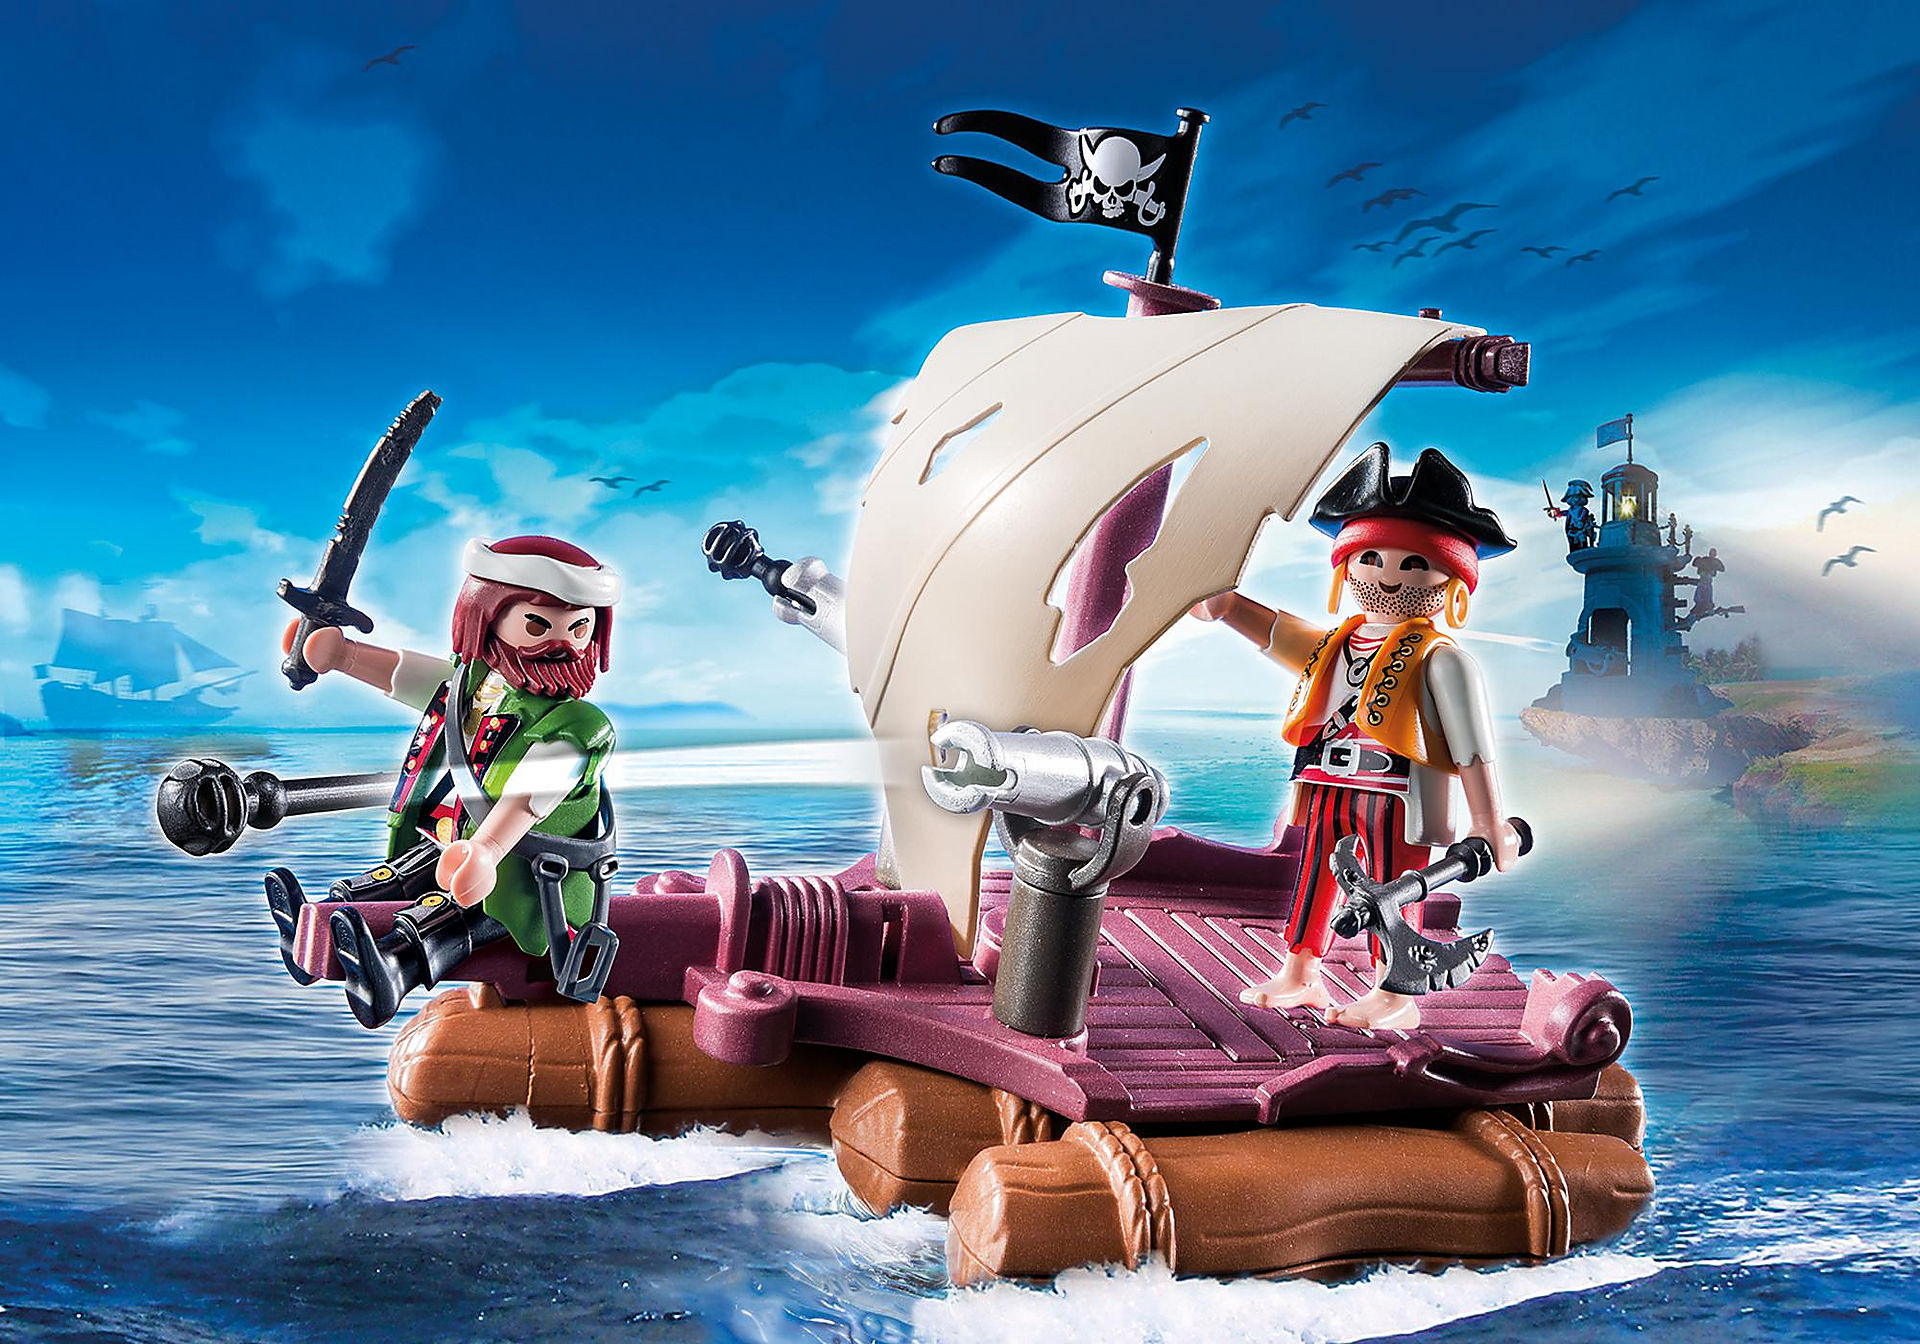 http://media.playmobil.com/i/playmobil/6682_product_detail/Pirate Raft